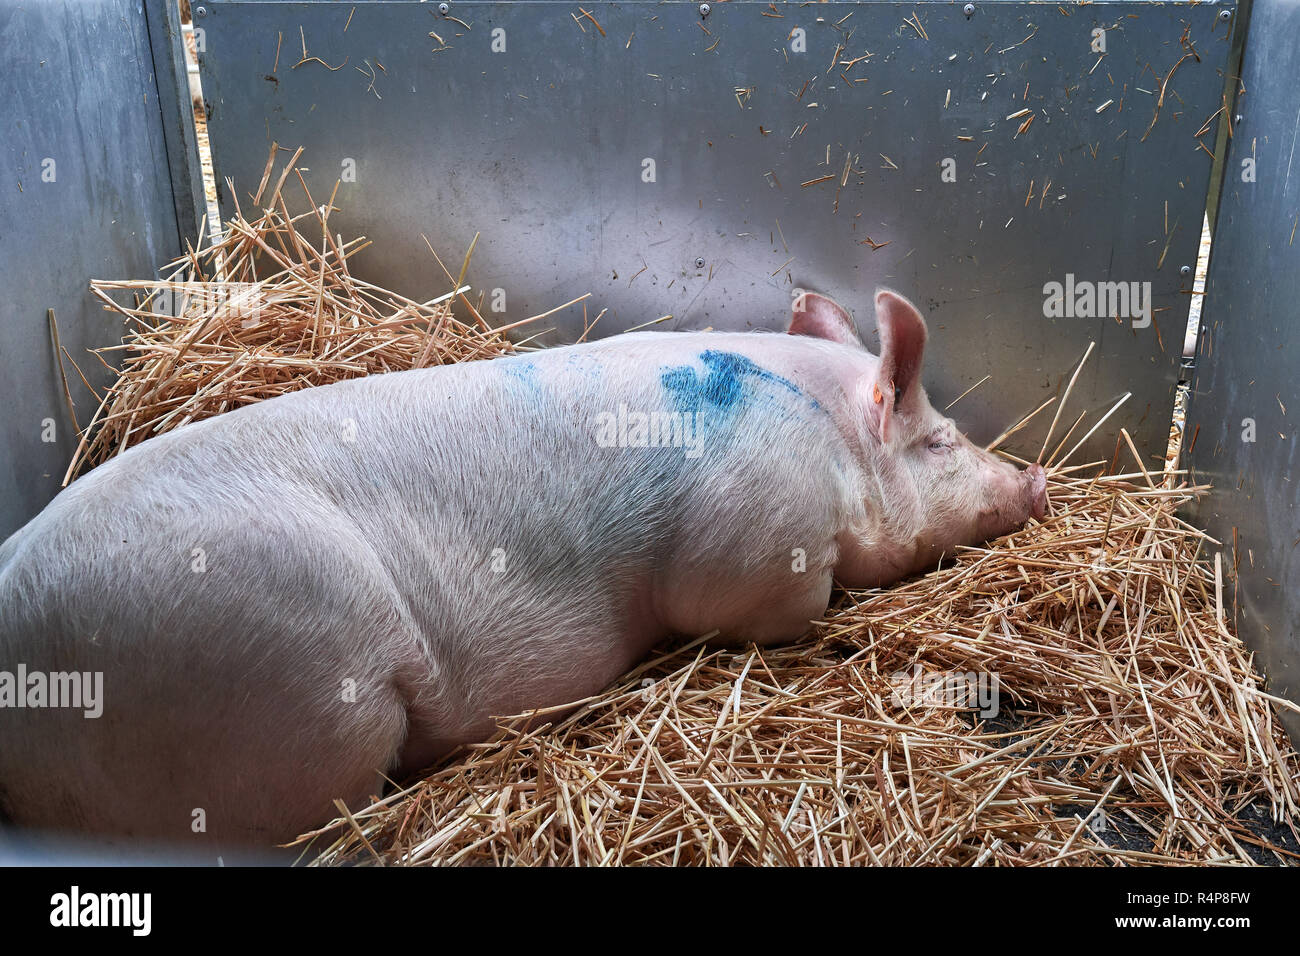 Uppingham, Rutland, UK. 28th November 2018. Dozing pig at the annual christmastime fatstock competition of primped and preened pigs, sheep and cattle, in the market square at Uppingham, Rutland, England on Wednesday 28th November 2018 Credit: Michael Foley/Alamy Live News - Stock Image